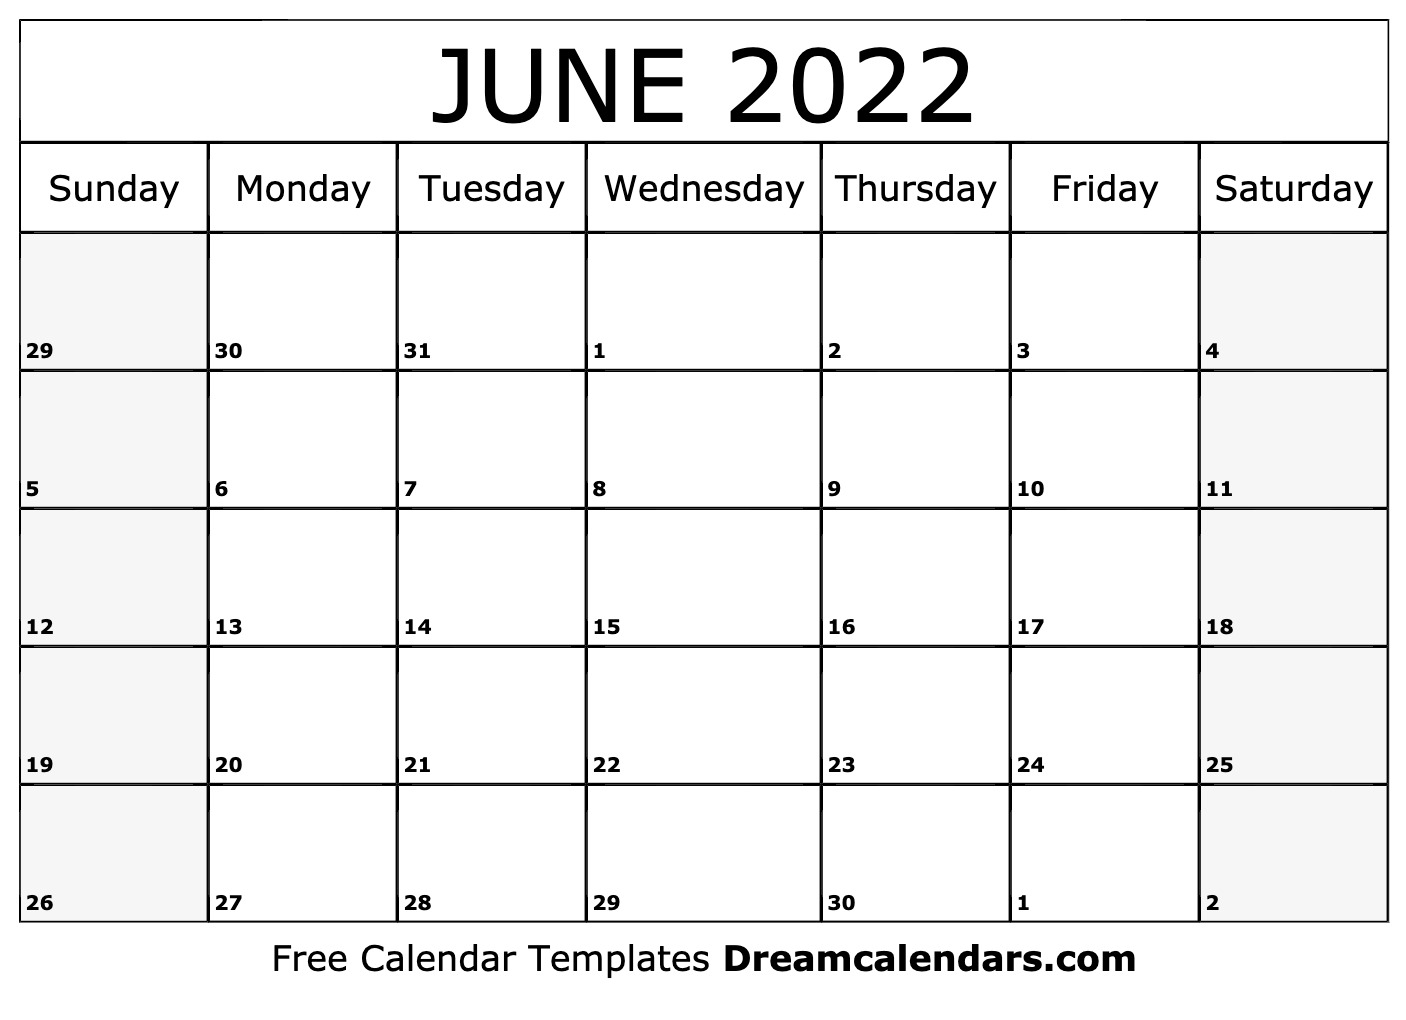 June 2022 Calendar | Free Blank Printable Templates with March April May June Calendar 2022